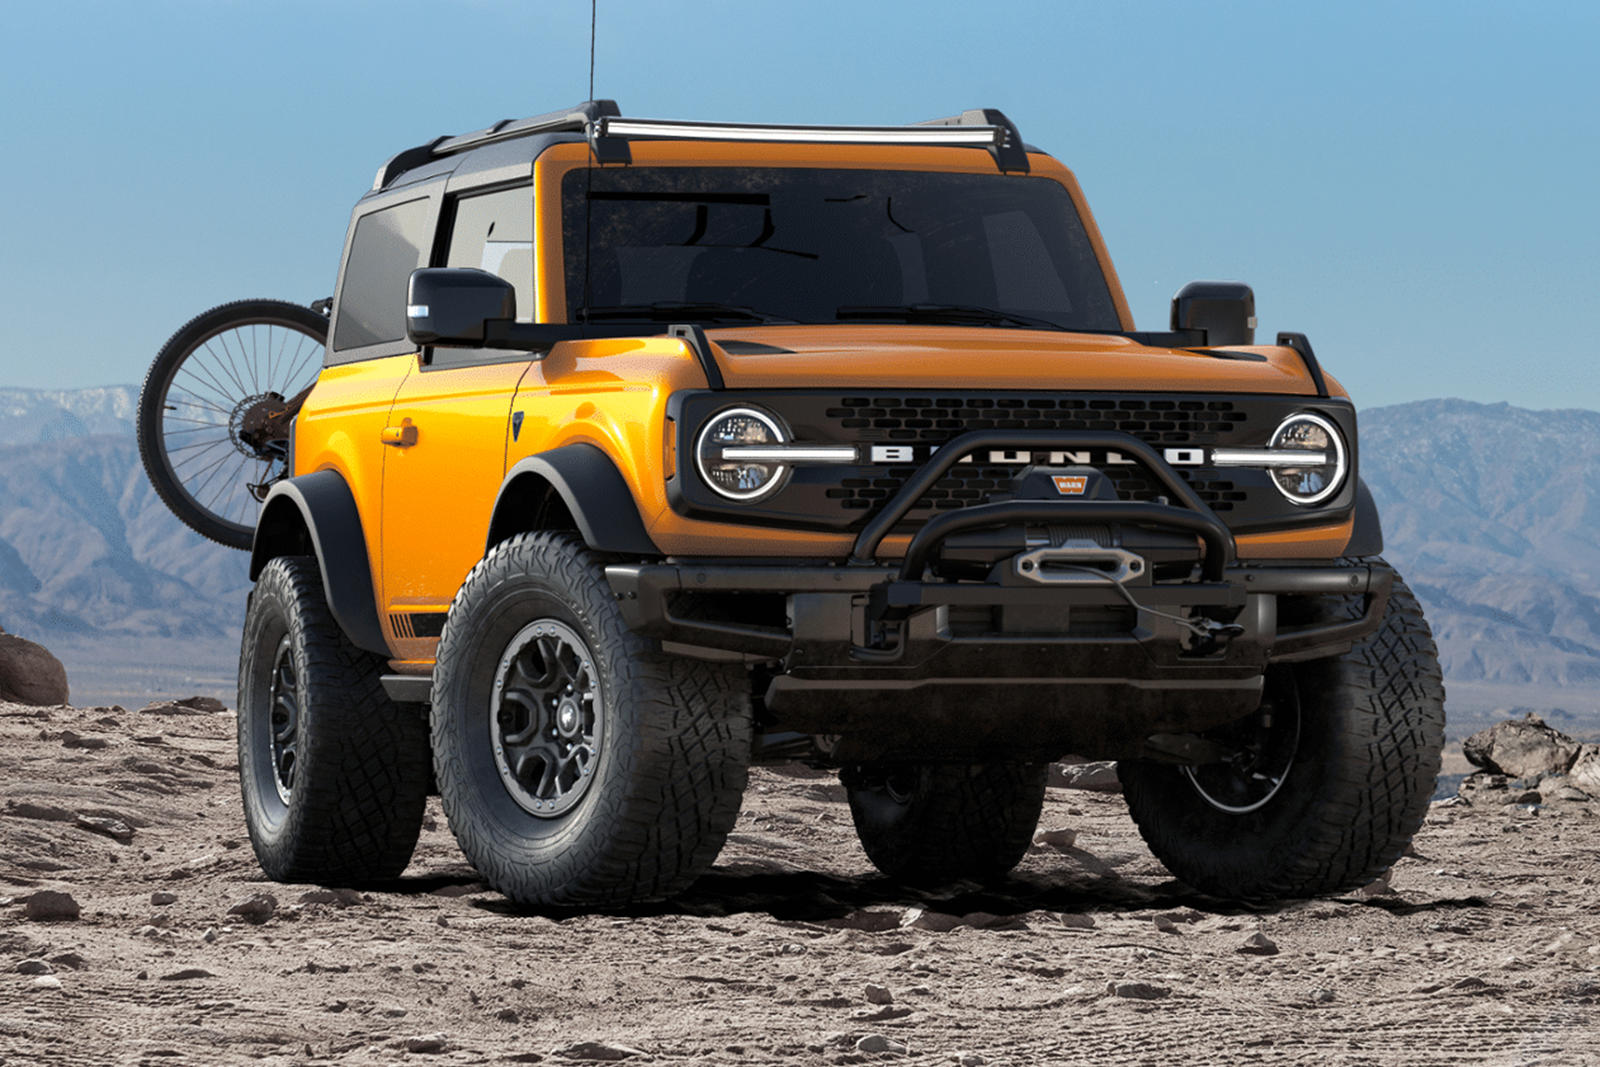 Ford Bronco Configurator Goes Live: Fully-Loaded Model Costs Over $70,000